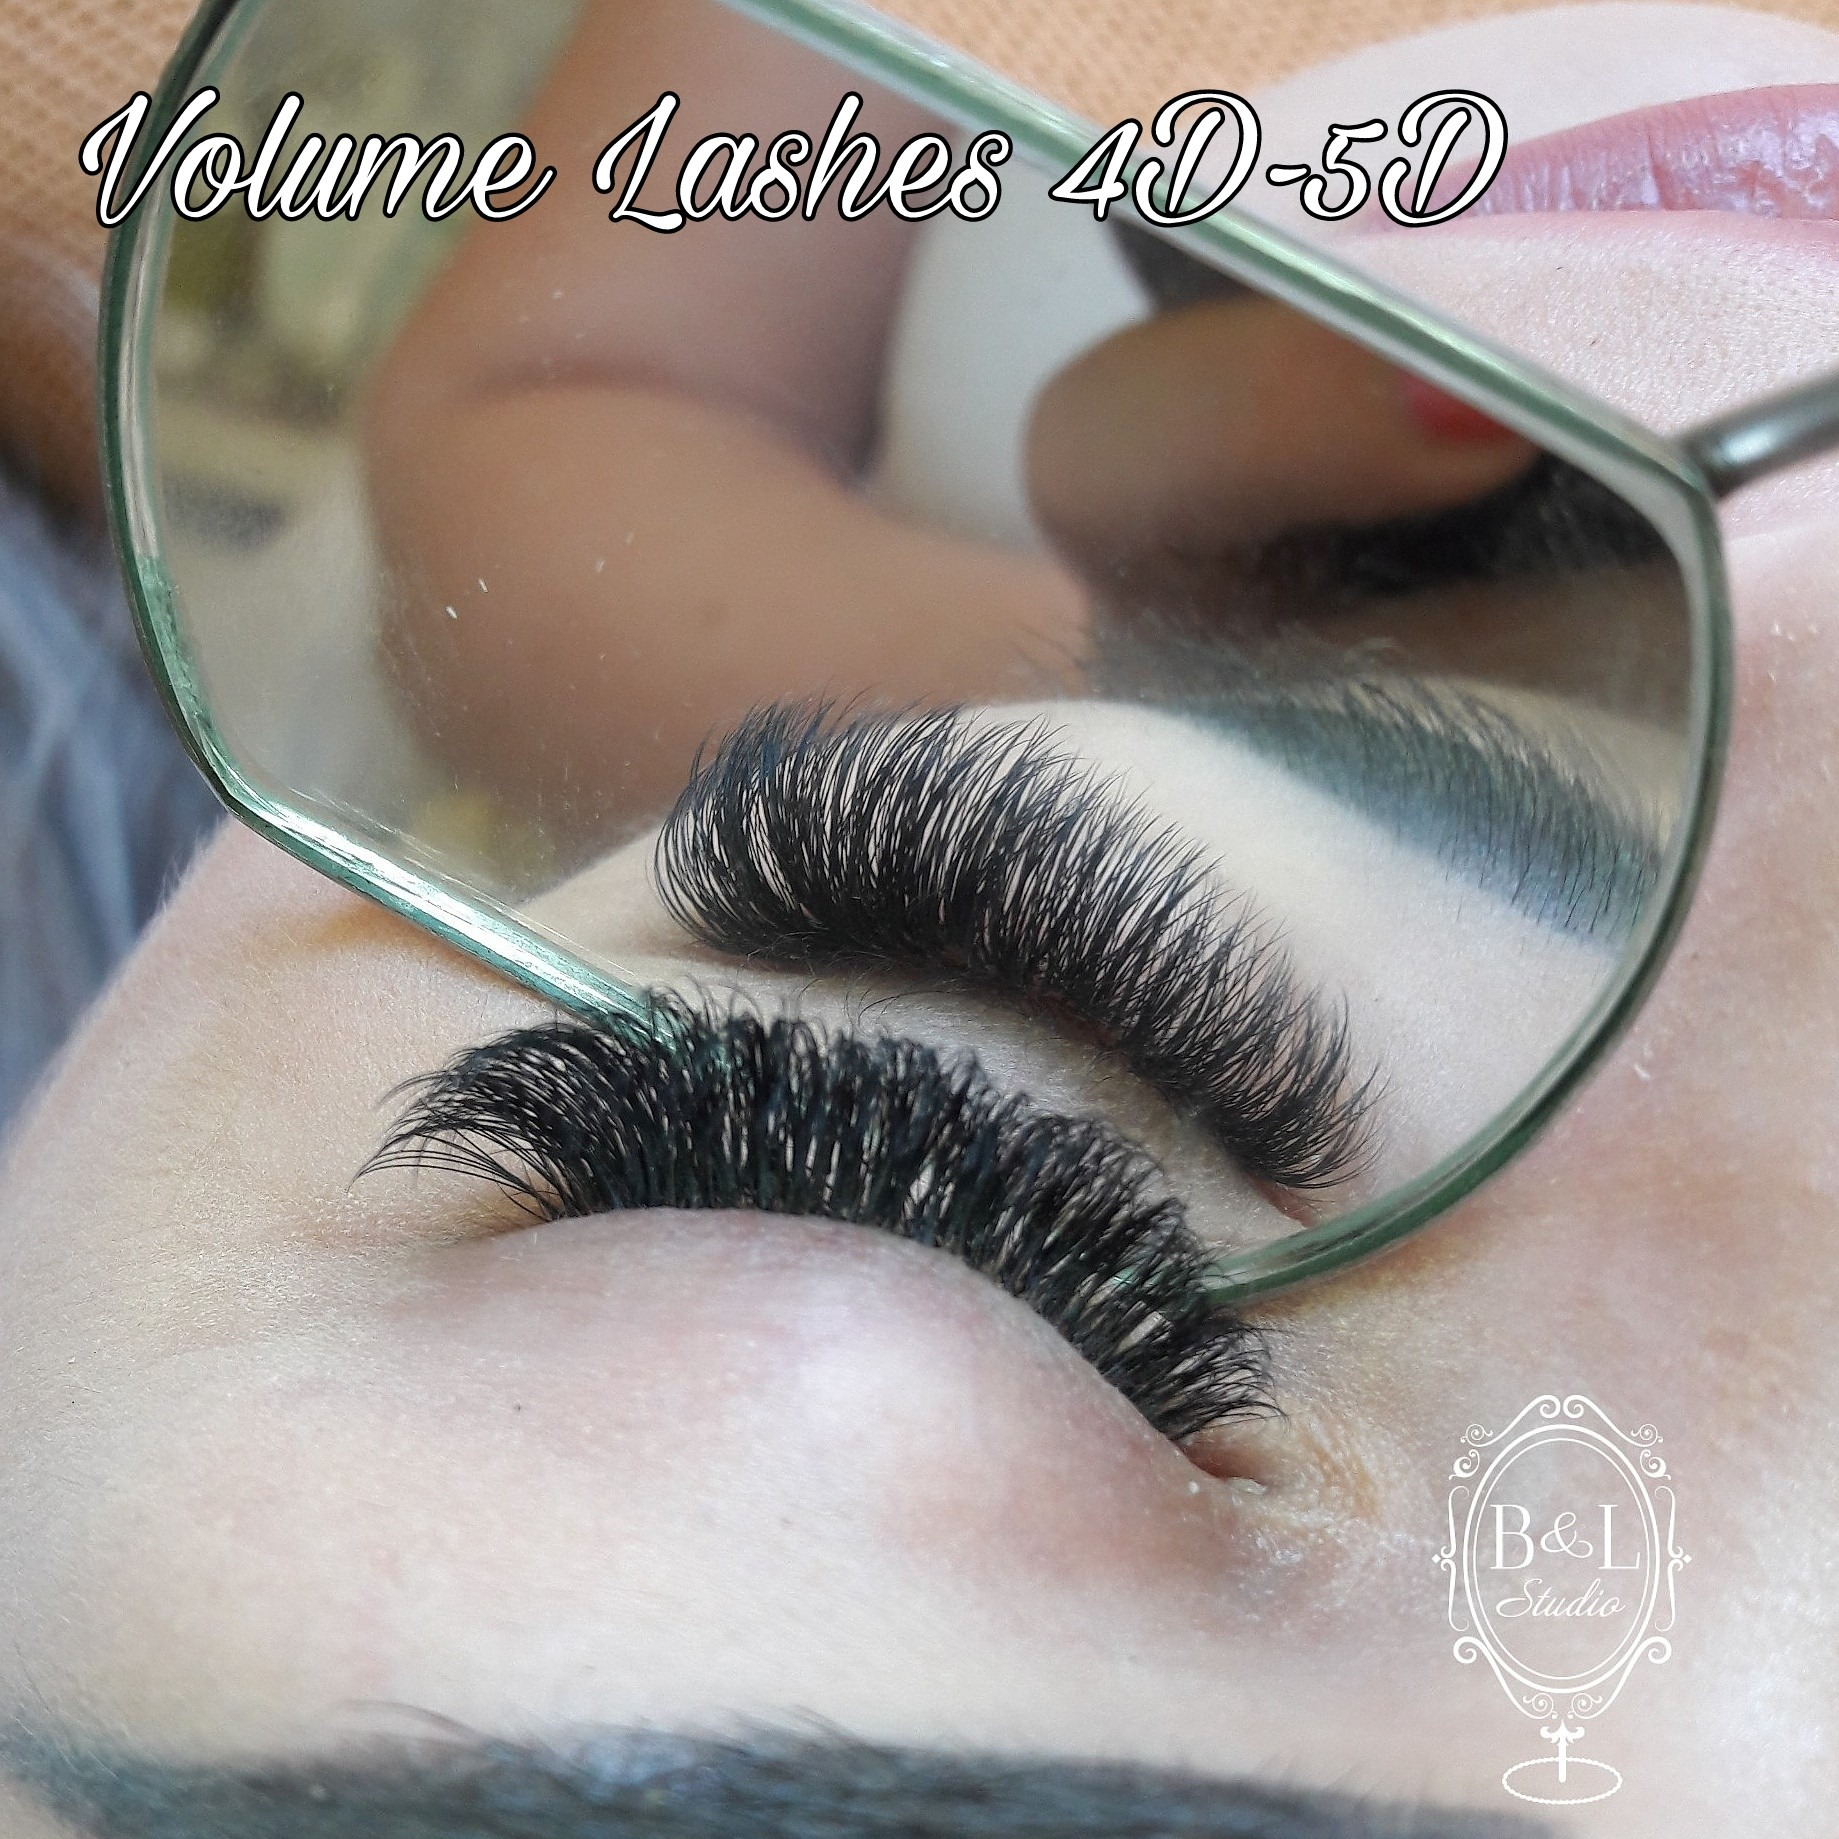 Volume Lashes 4D-5D